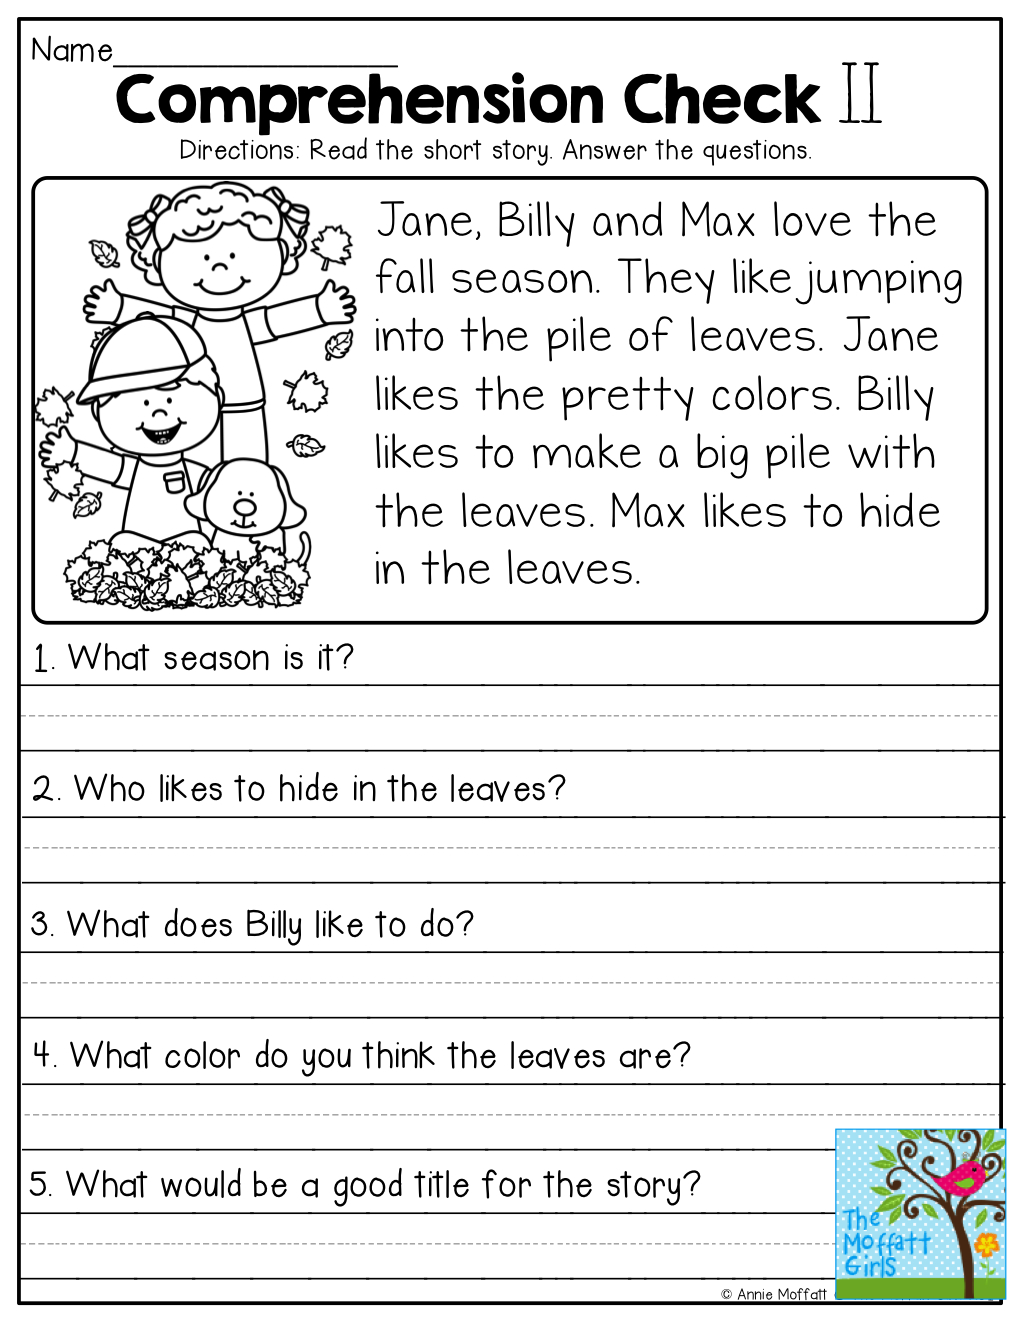 hight resolution of 3rd Grade Reading Comprehension Free Printable Worksheet   Printable  Worksheets and Activities for Teachers